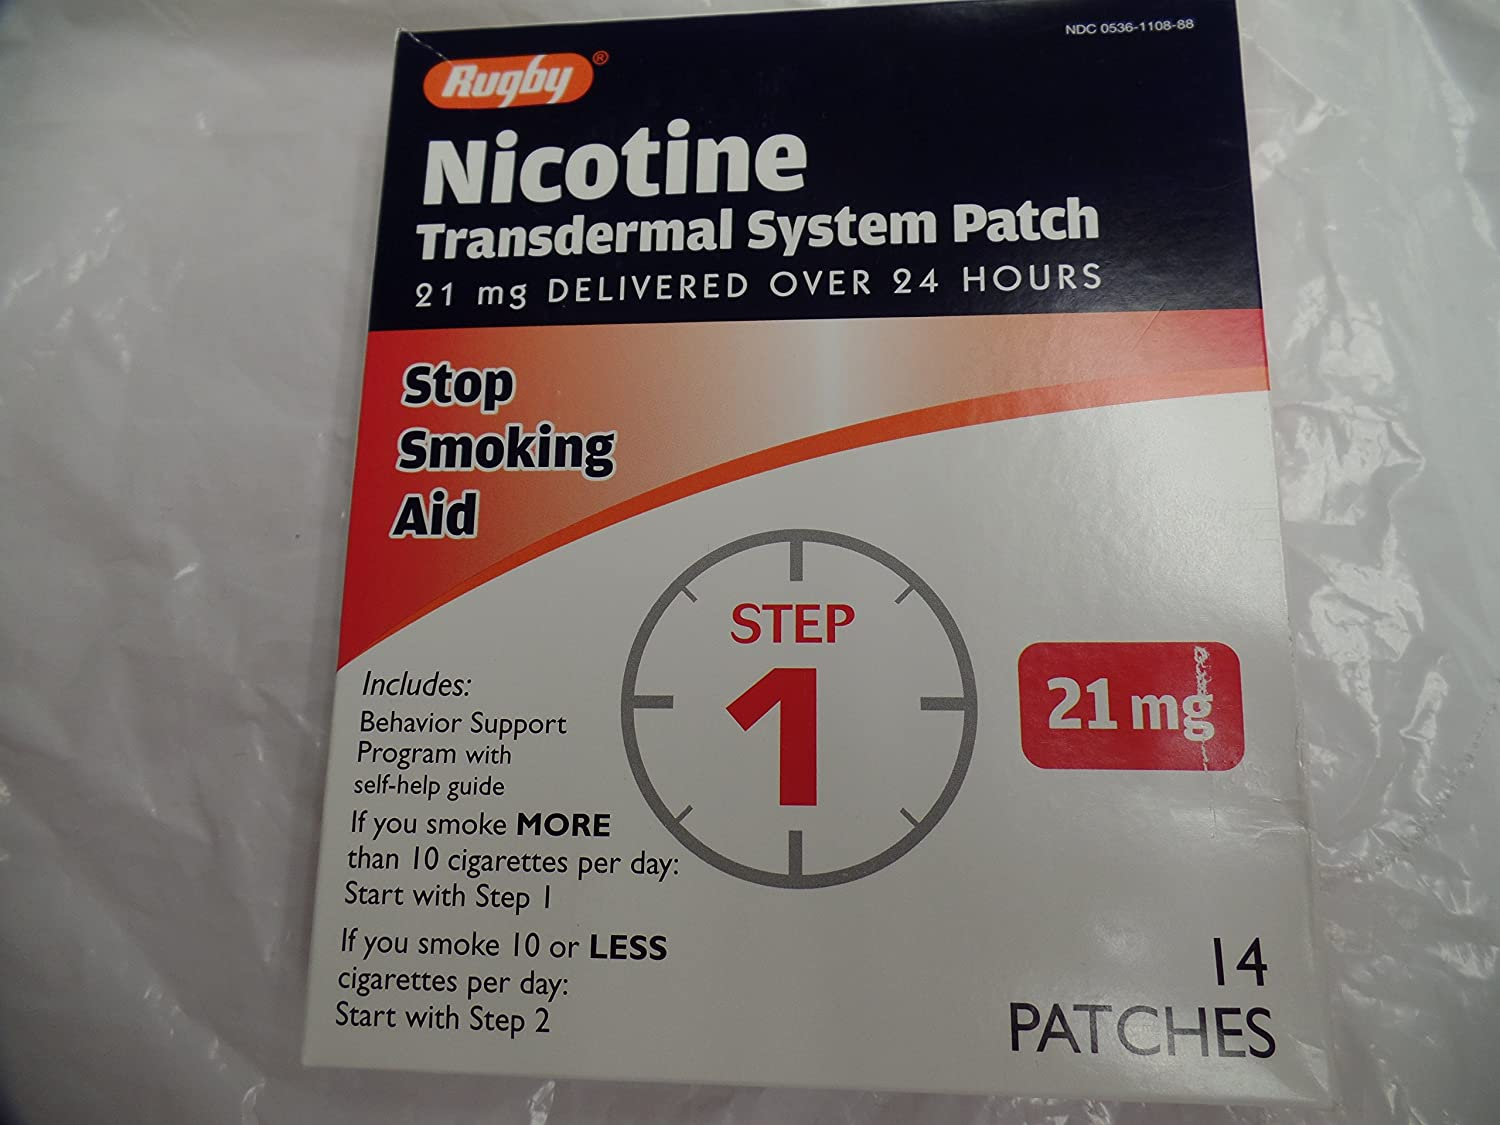 Amazon.com: RUGBY NICOTINE TRANSDERMAL SYSTEM PATCH STEP 1 21mg OPAQUE:  Health & Personal Care